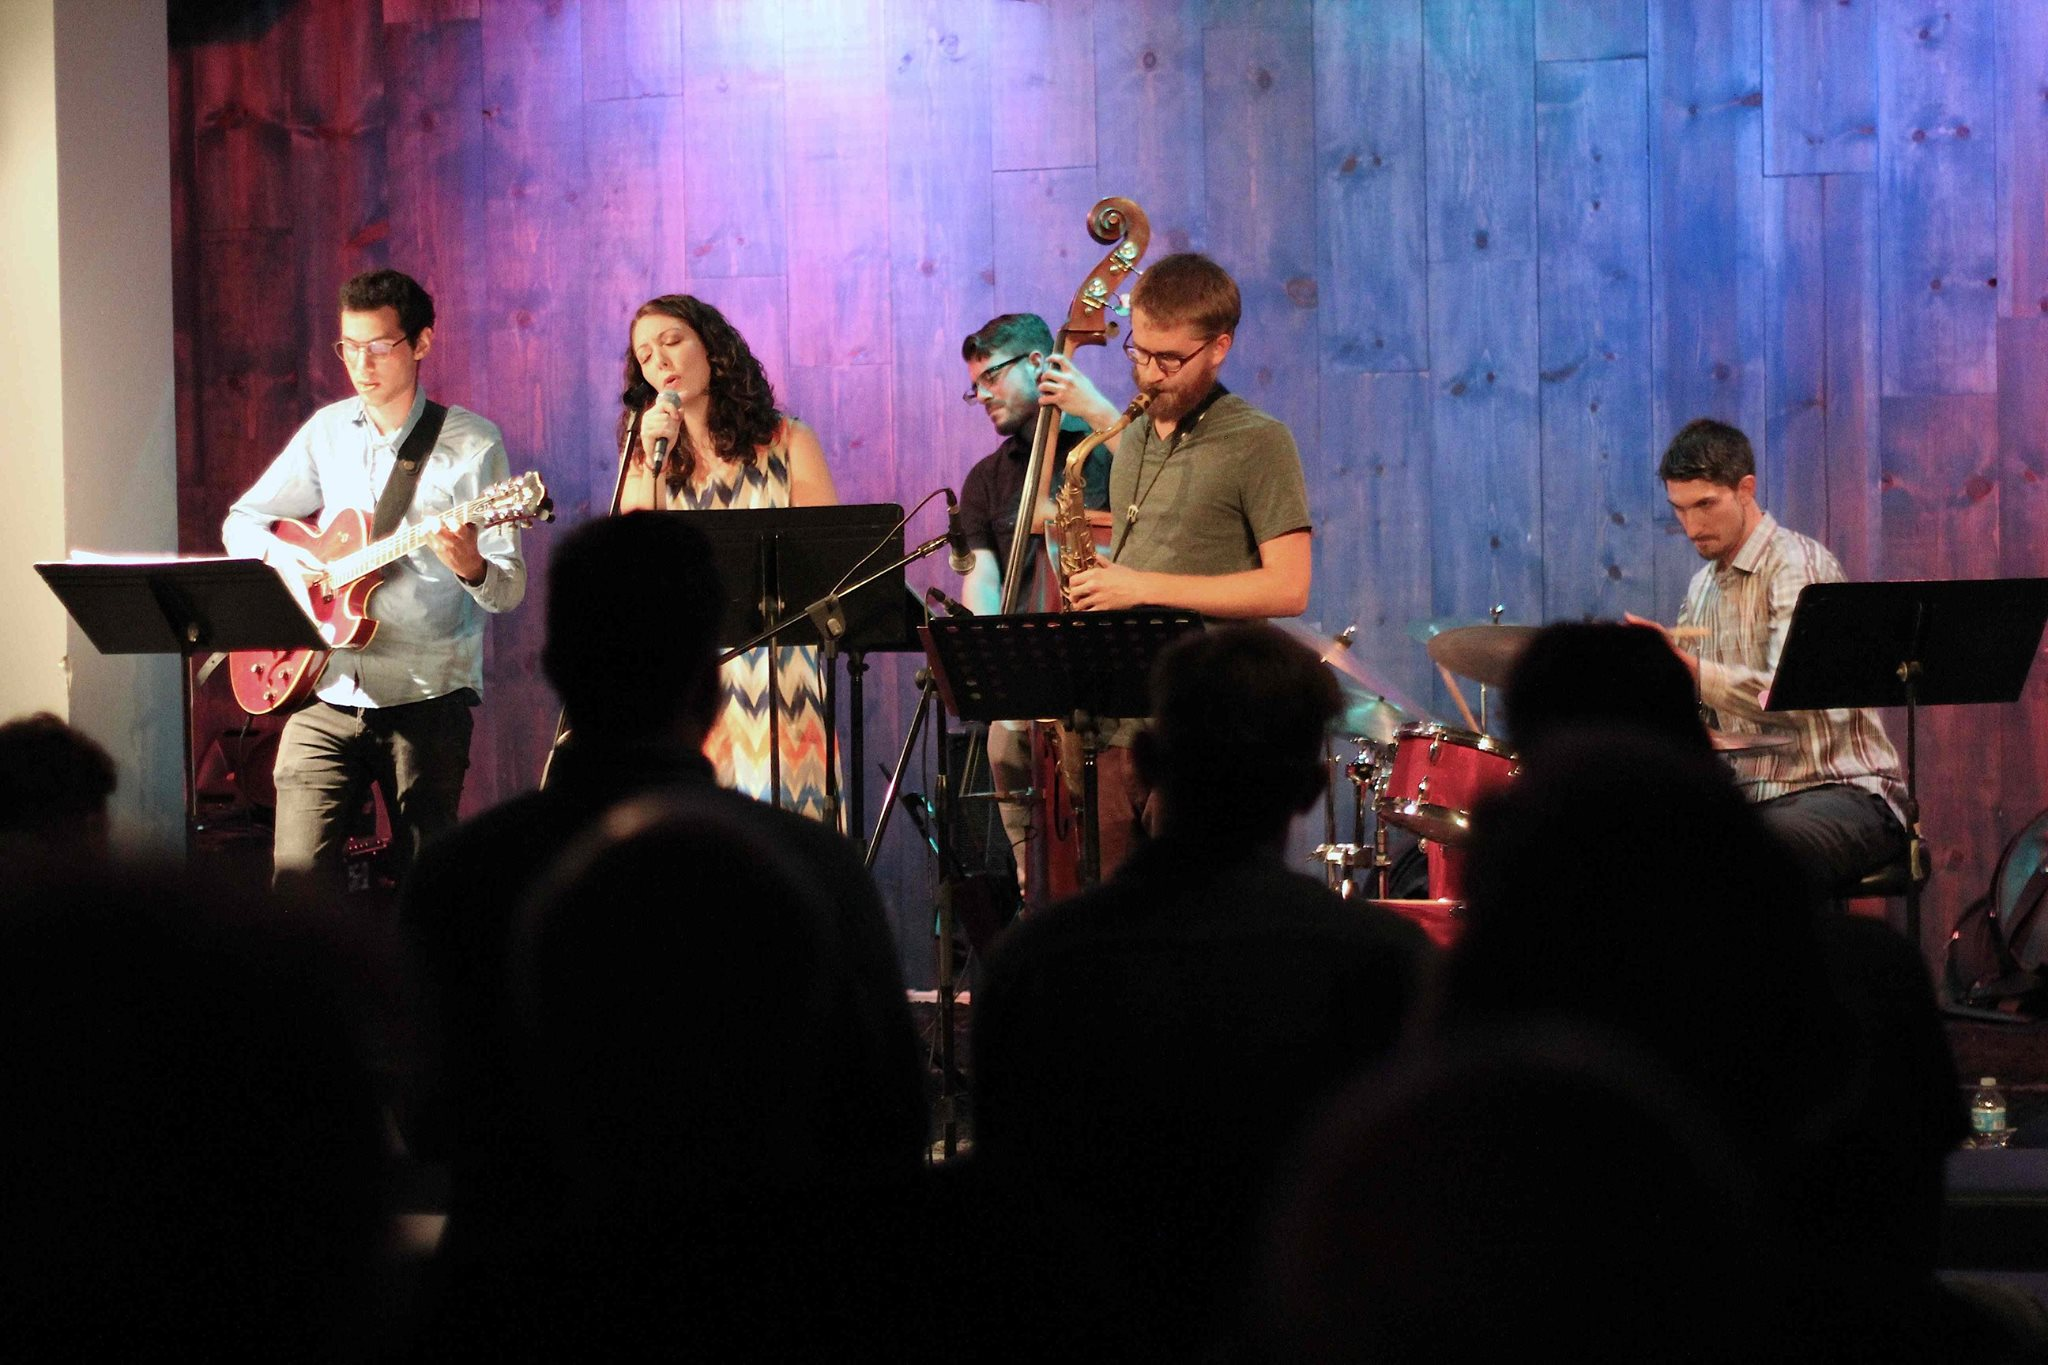 Trevor Anderies Quintet live at the Blue Whale